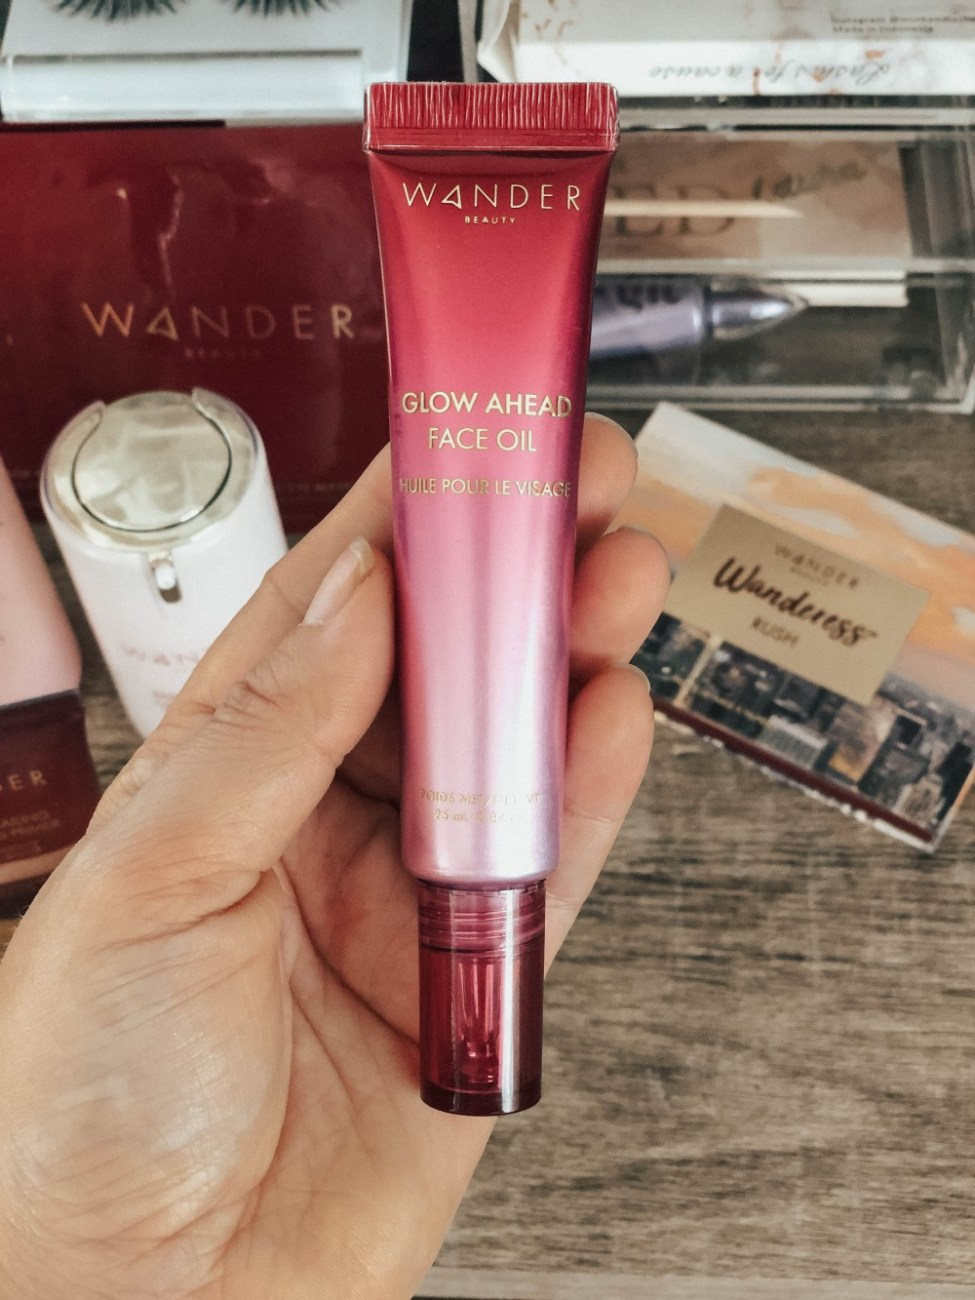 Wander Beauty clean beauty favorites and product review. Head to the blog to check it out! #cleanbeauty #skincare